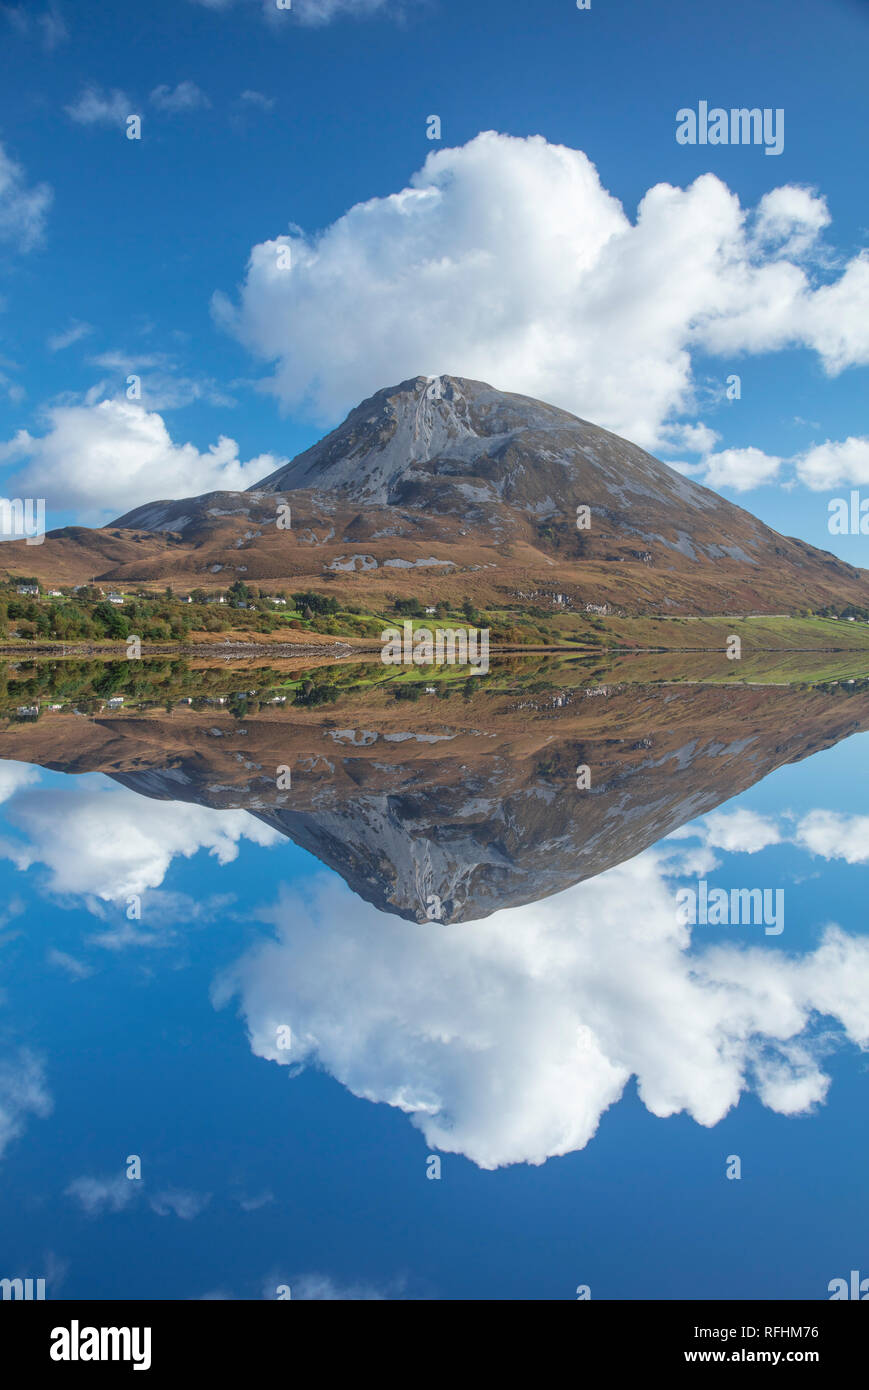 Perfect reflection of Errigal Mountain in Dunlewy Lough. County Donegal, Ireland. - Stock Image